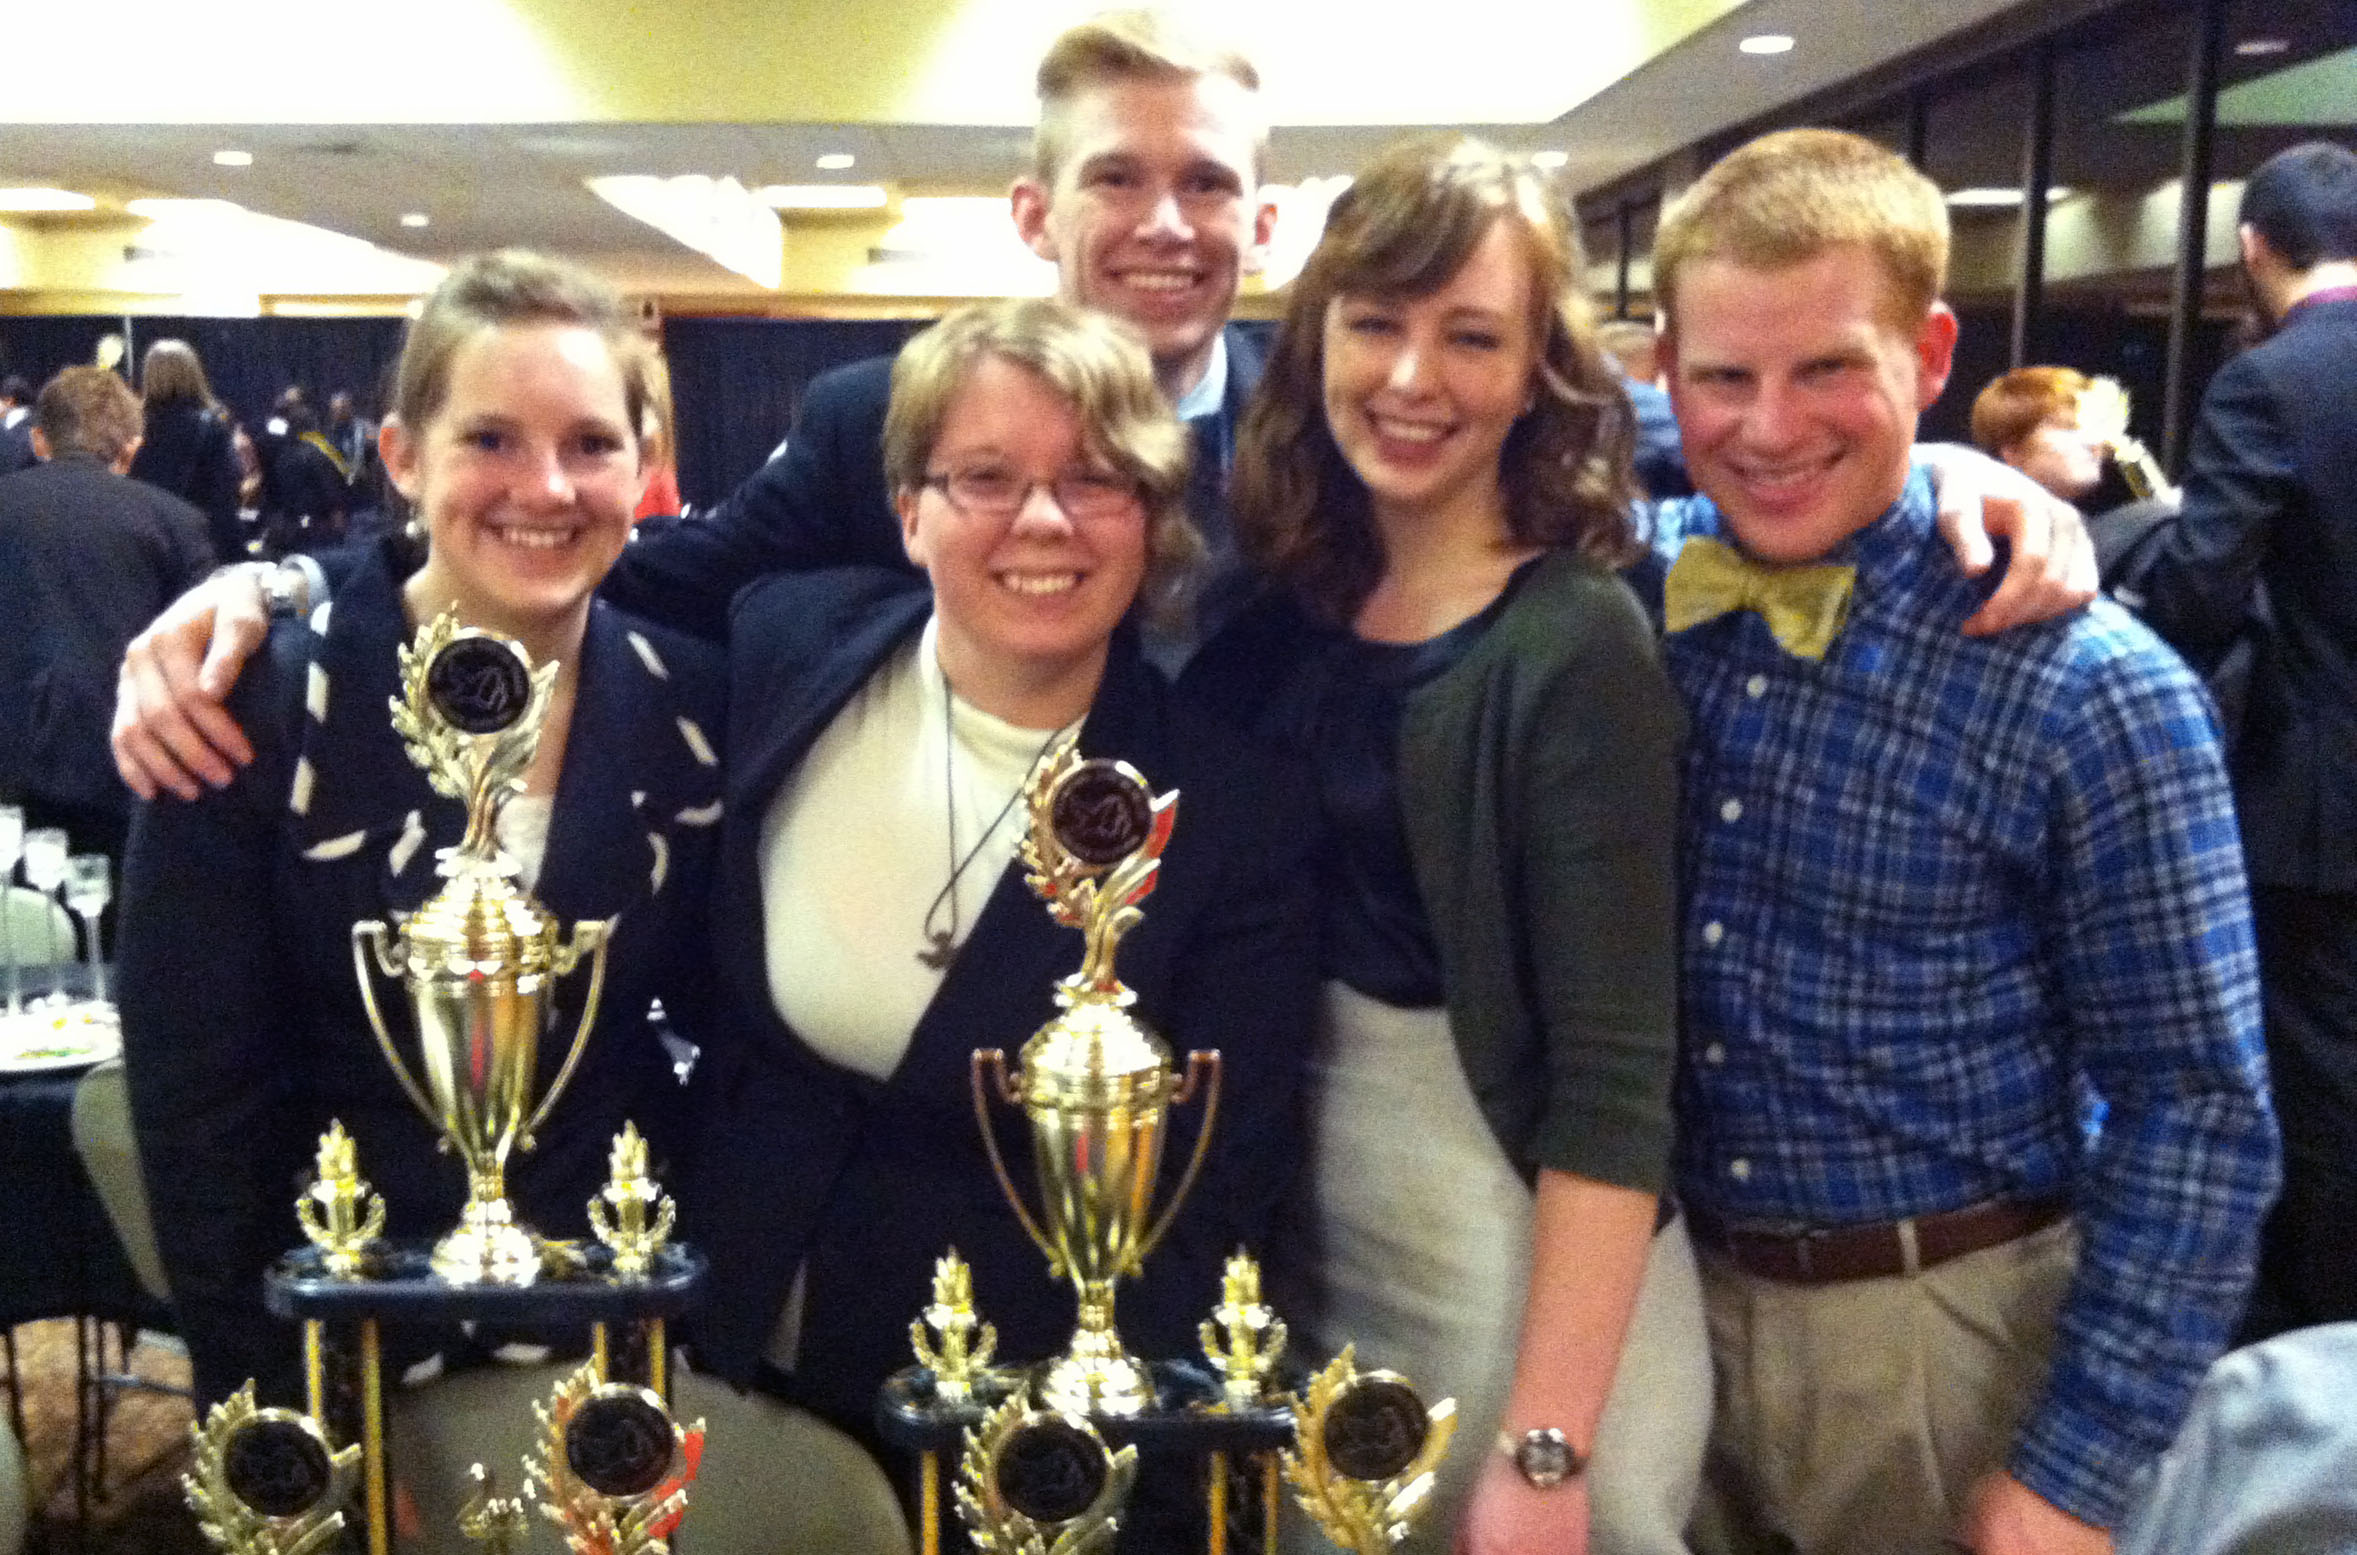 Cedarville's forensics team recently finished second in division two individual events at the 16th annual National Christian College Forensics Invitational. Photo courtesy of Derrick Green.